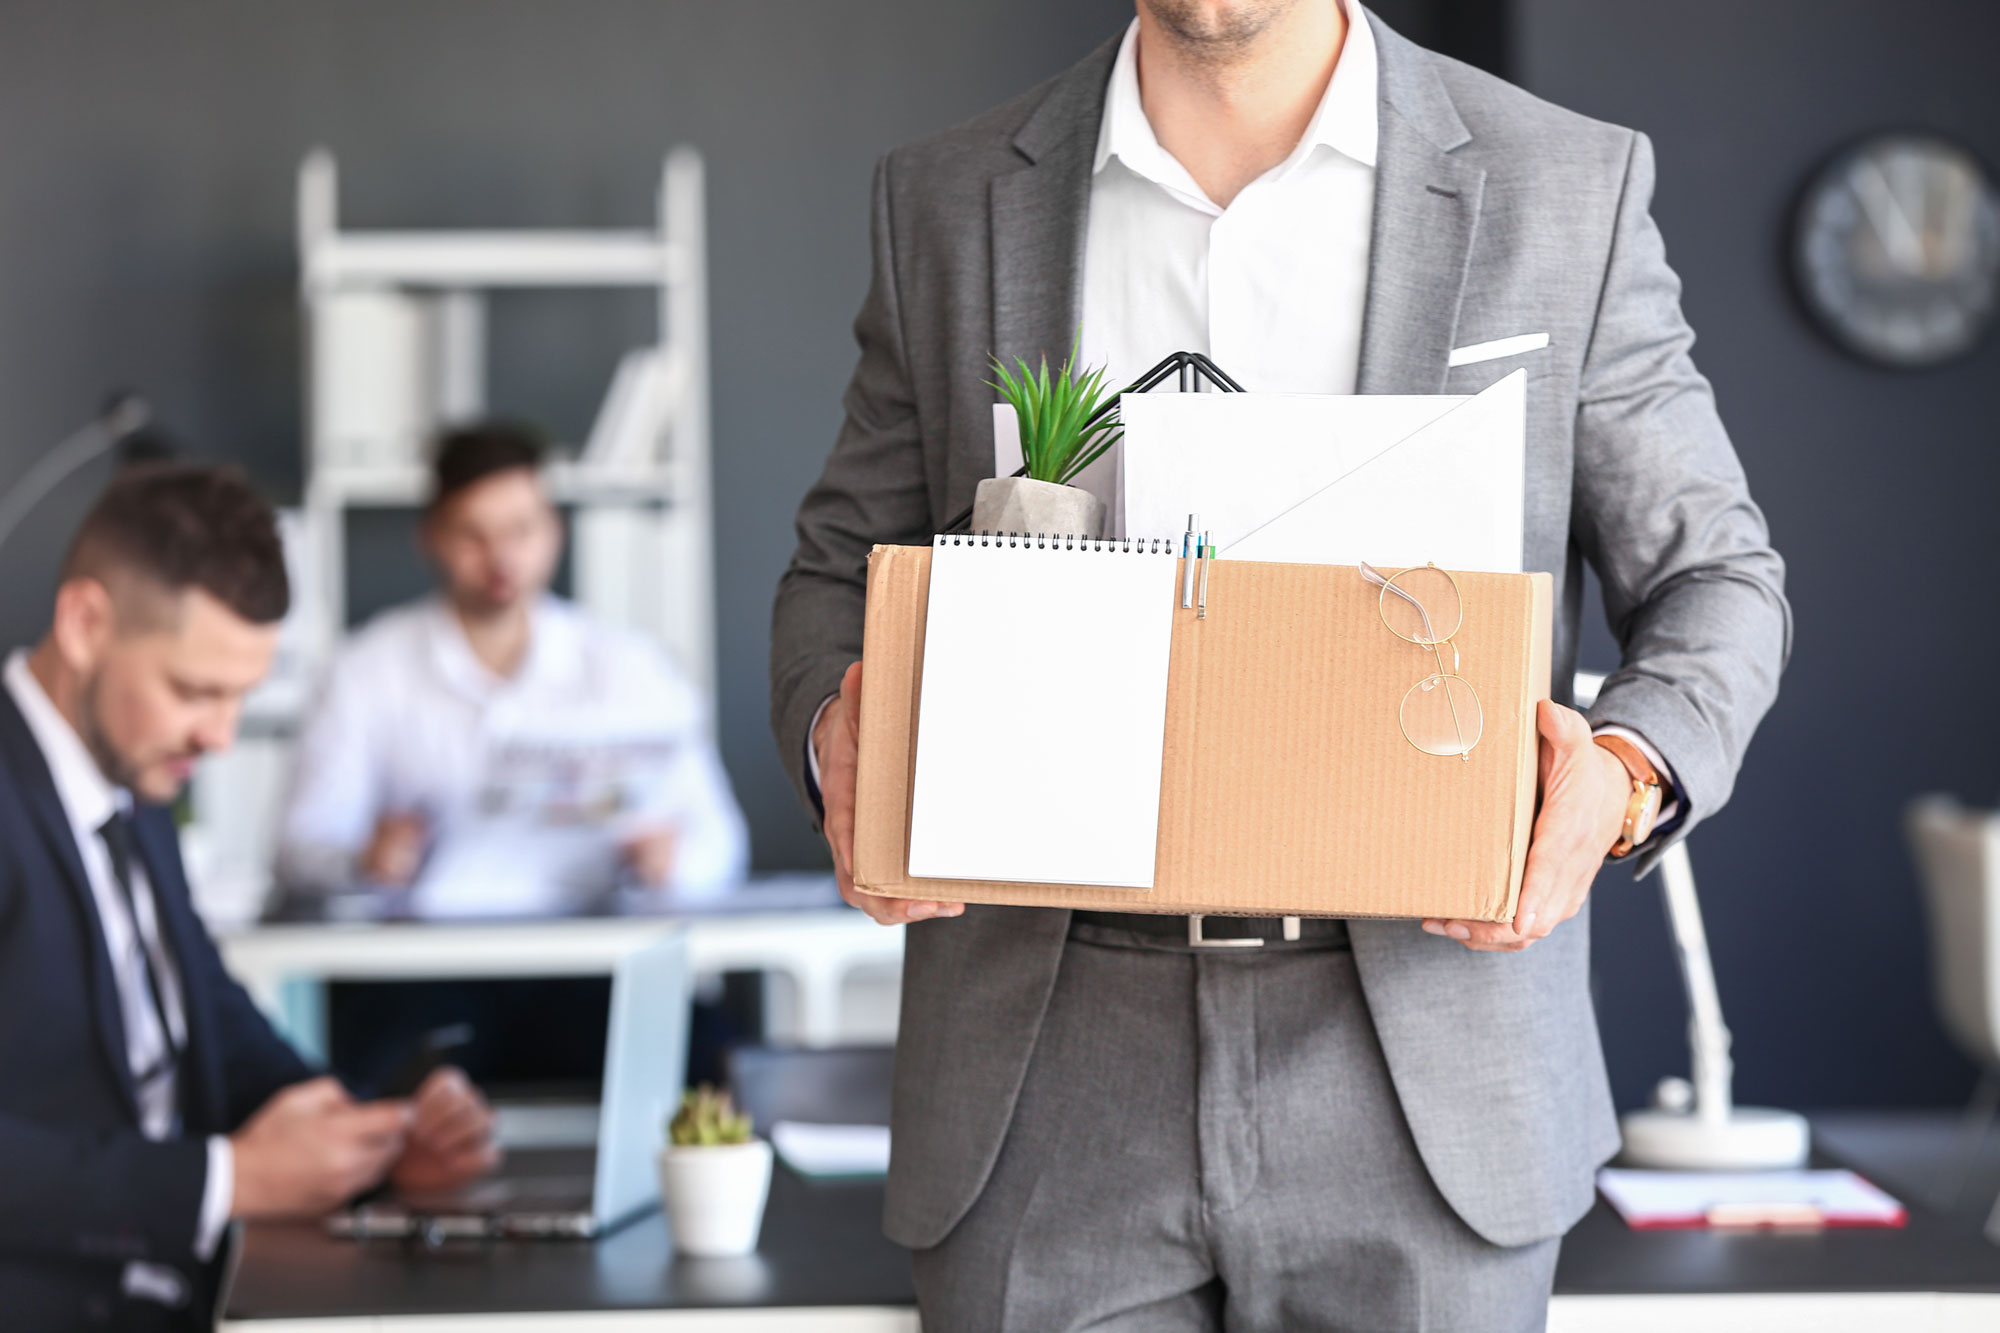 As an employer, what should I know about constructive dismissal?